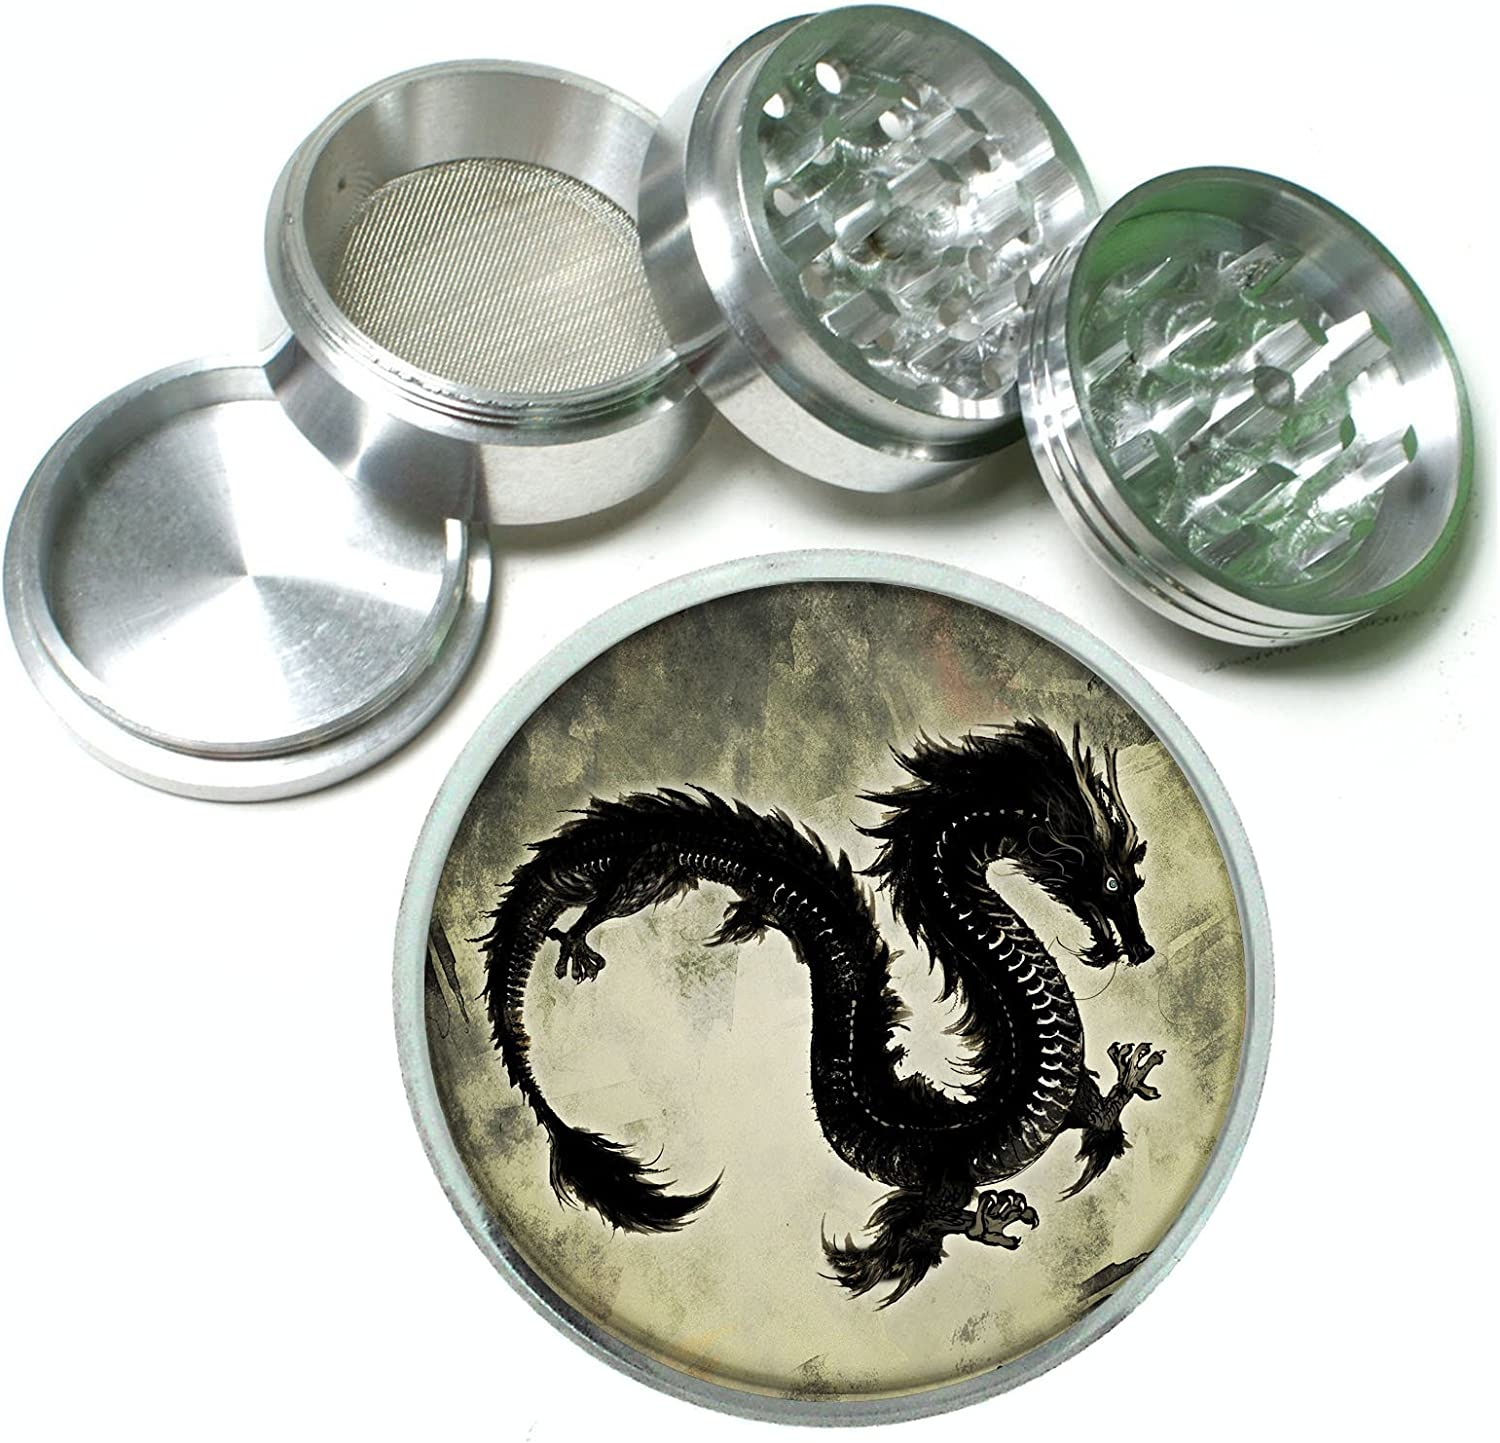 Chinese Dragon Aluminum Tobacco Spice Herb Grinder